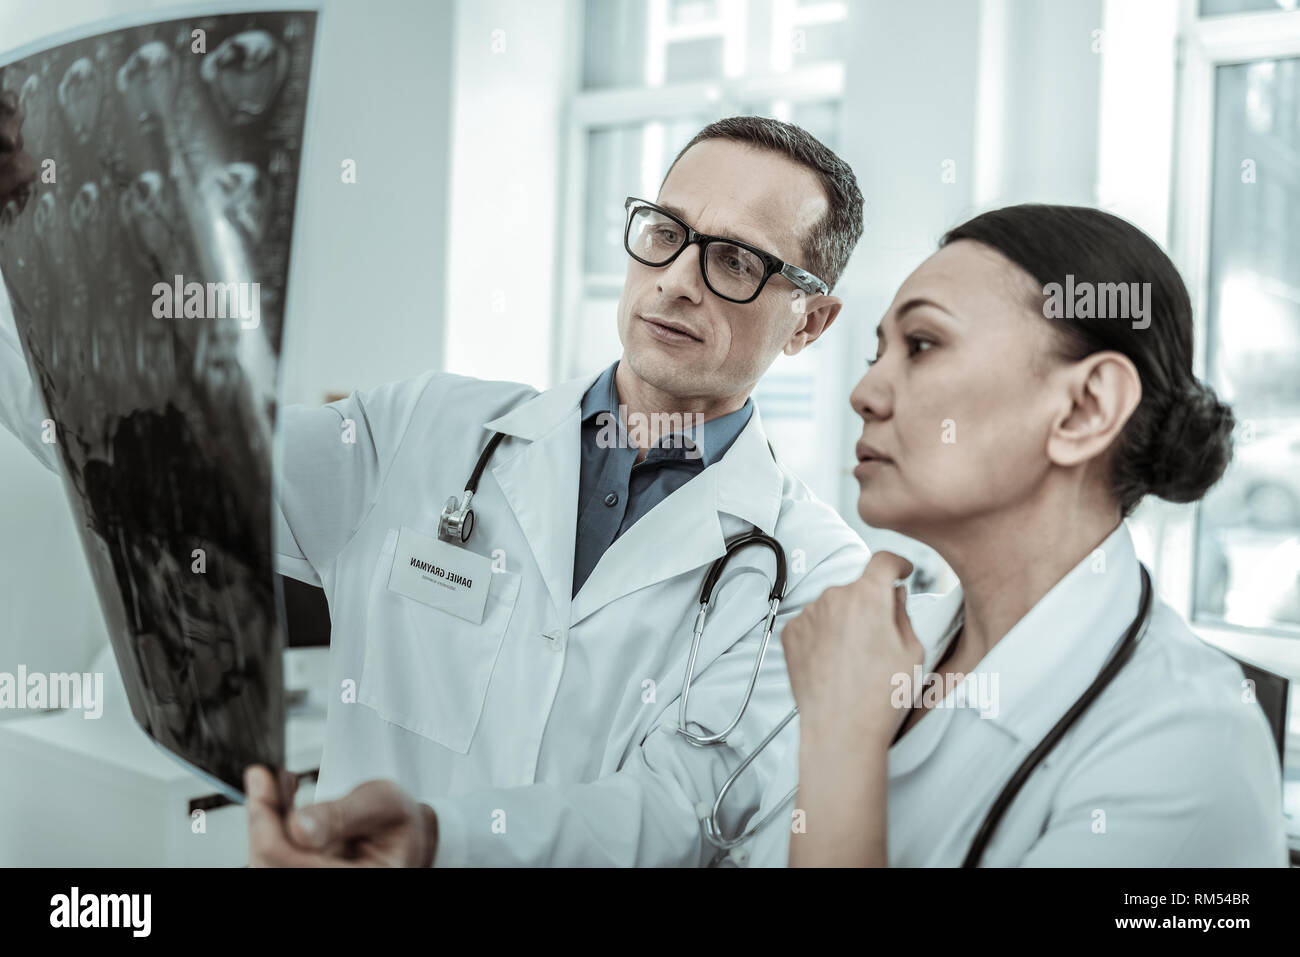 Executive doctors searching for fracture or crack in bones - Stock Image